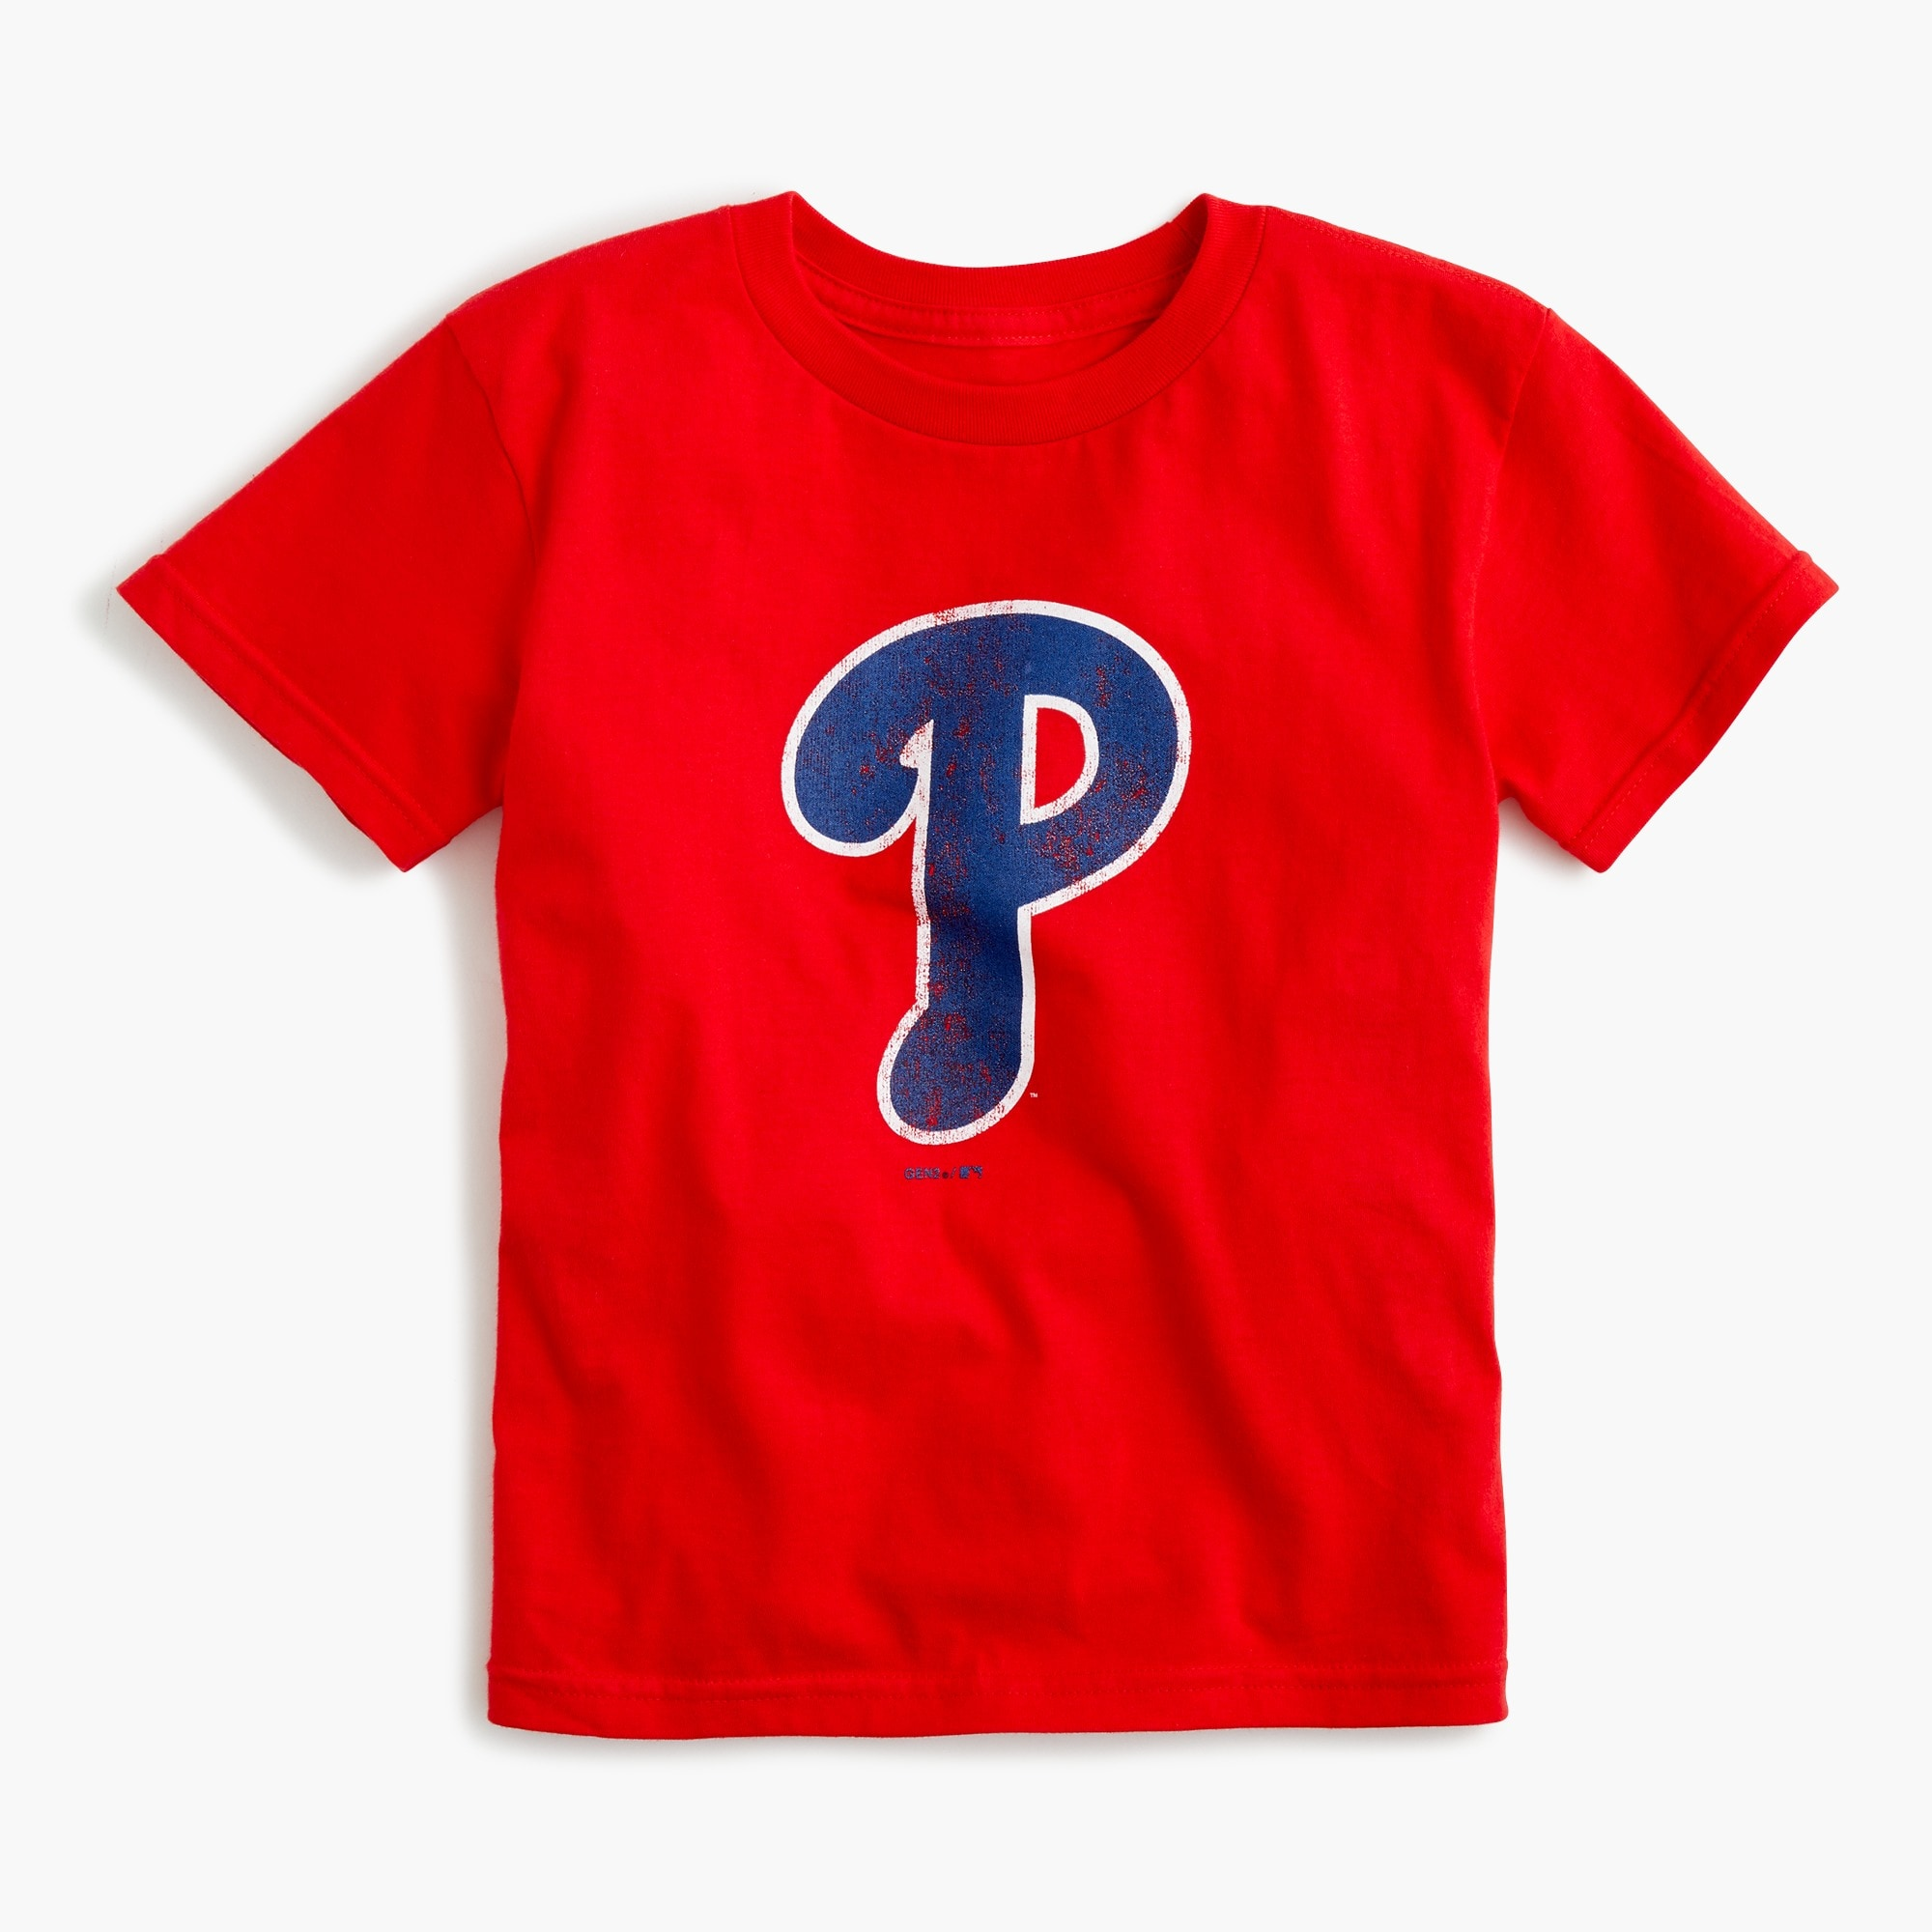 Kids' Philadelphia Phillies T-shirt boy graphics shop c